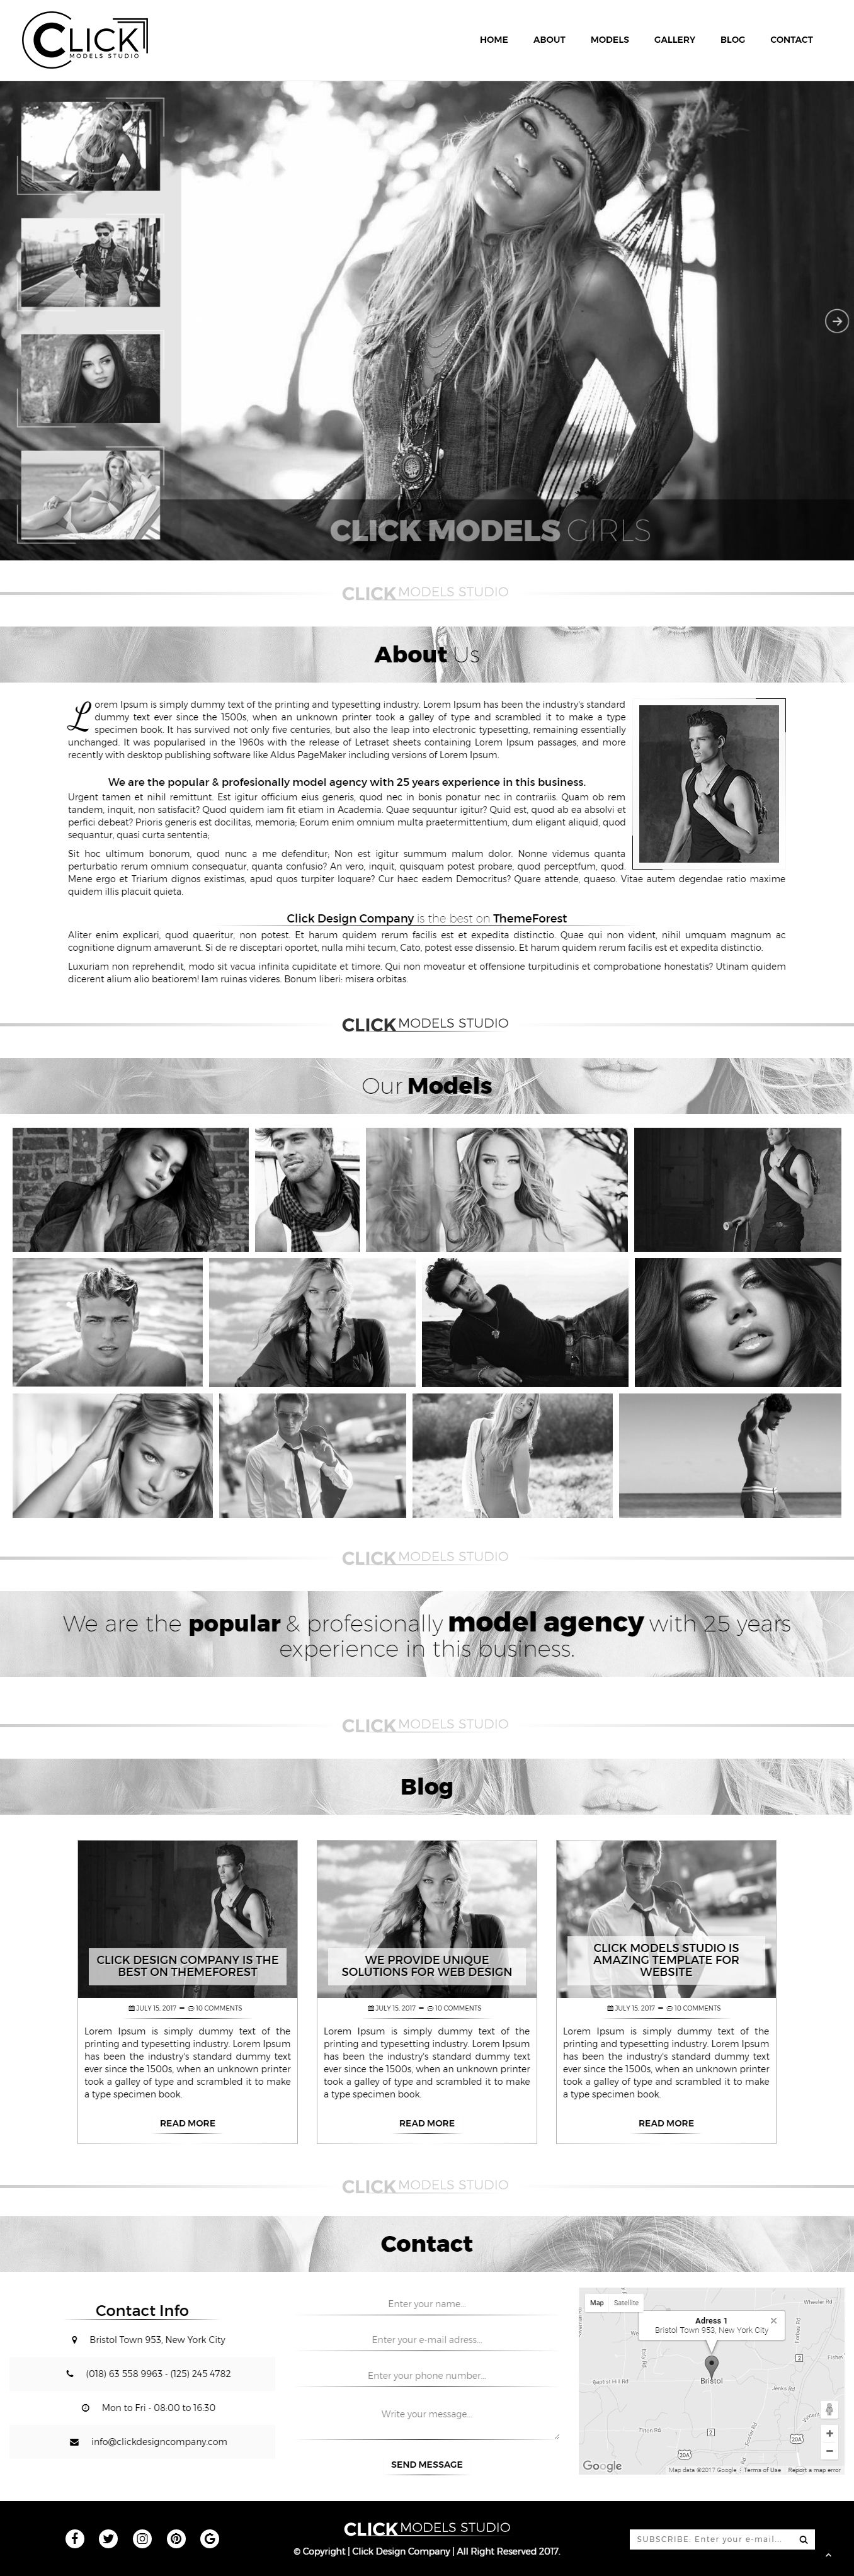 Click Models Studio - HTML Template Screenshot 1